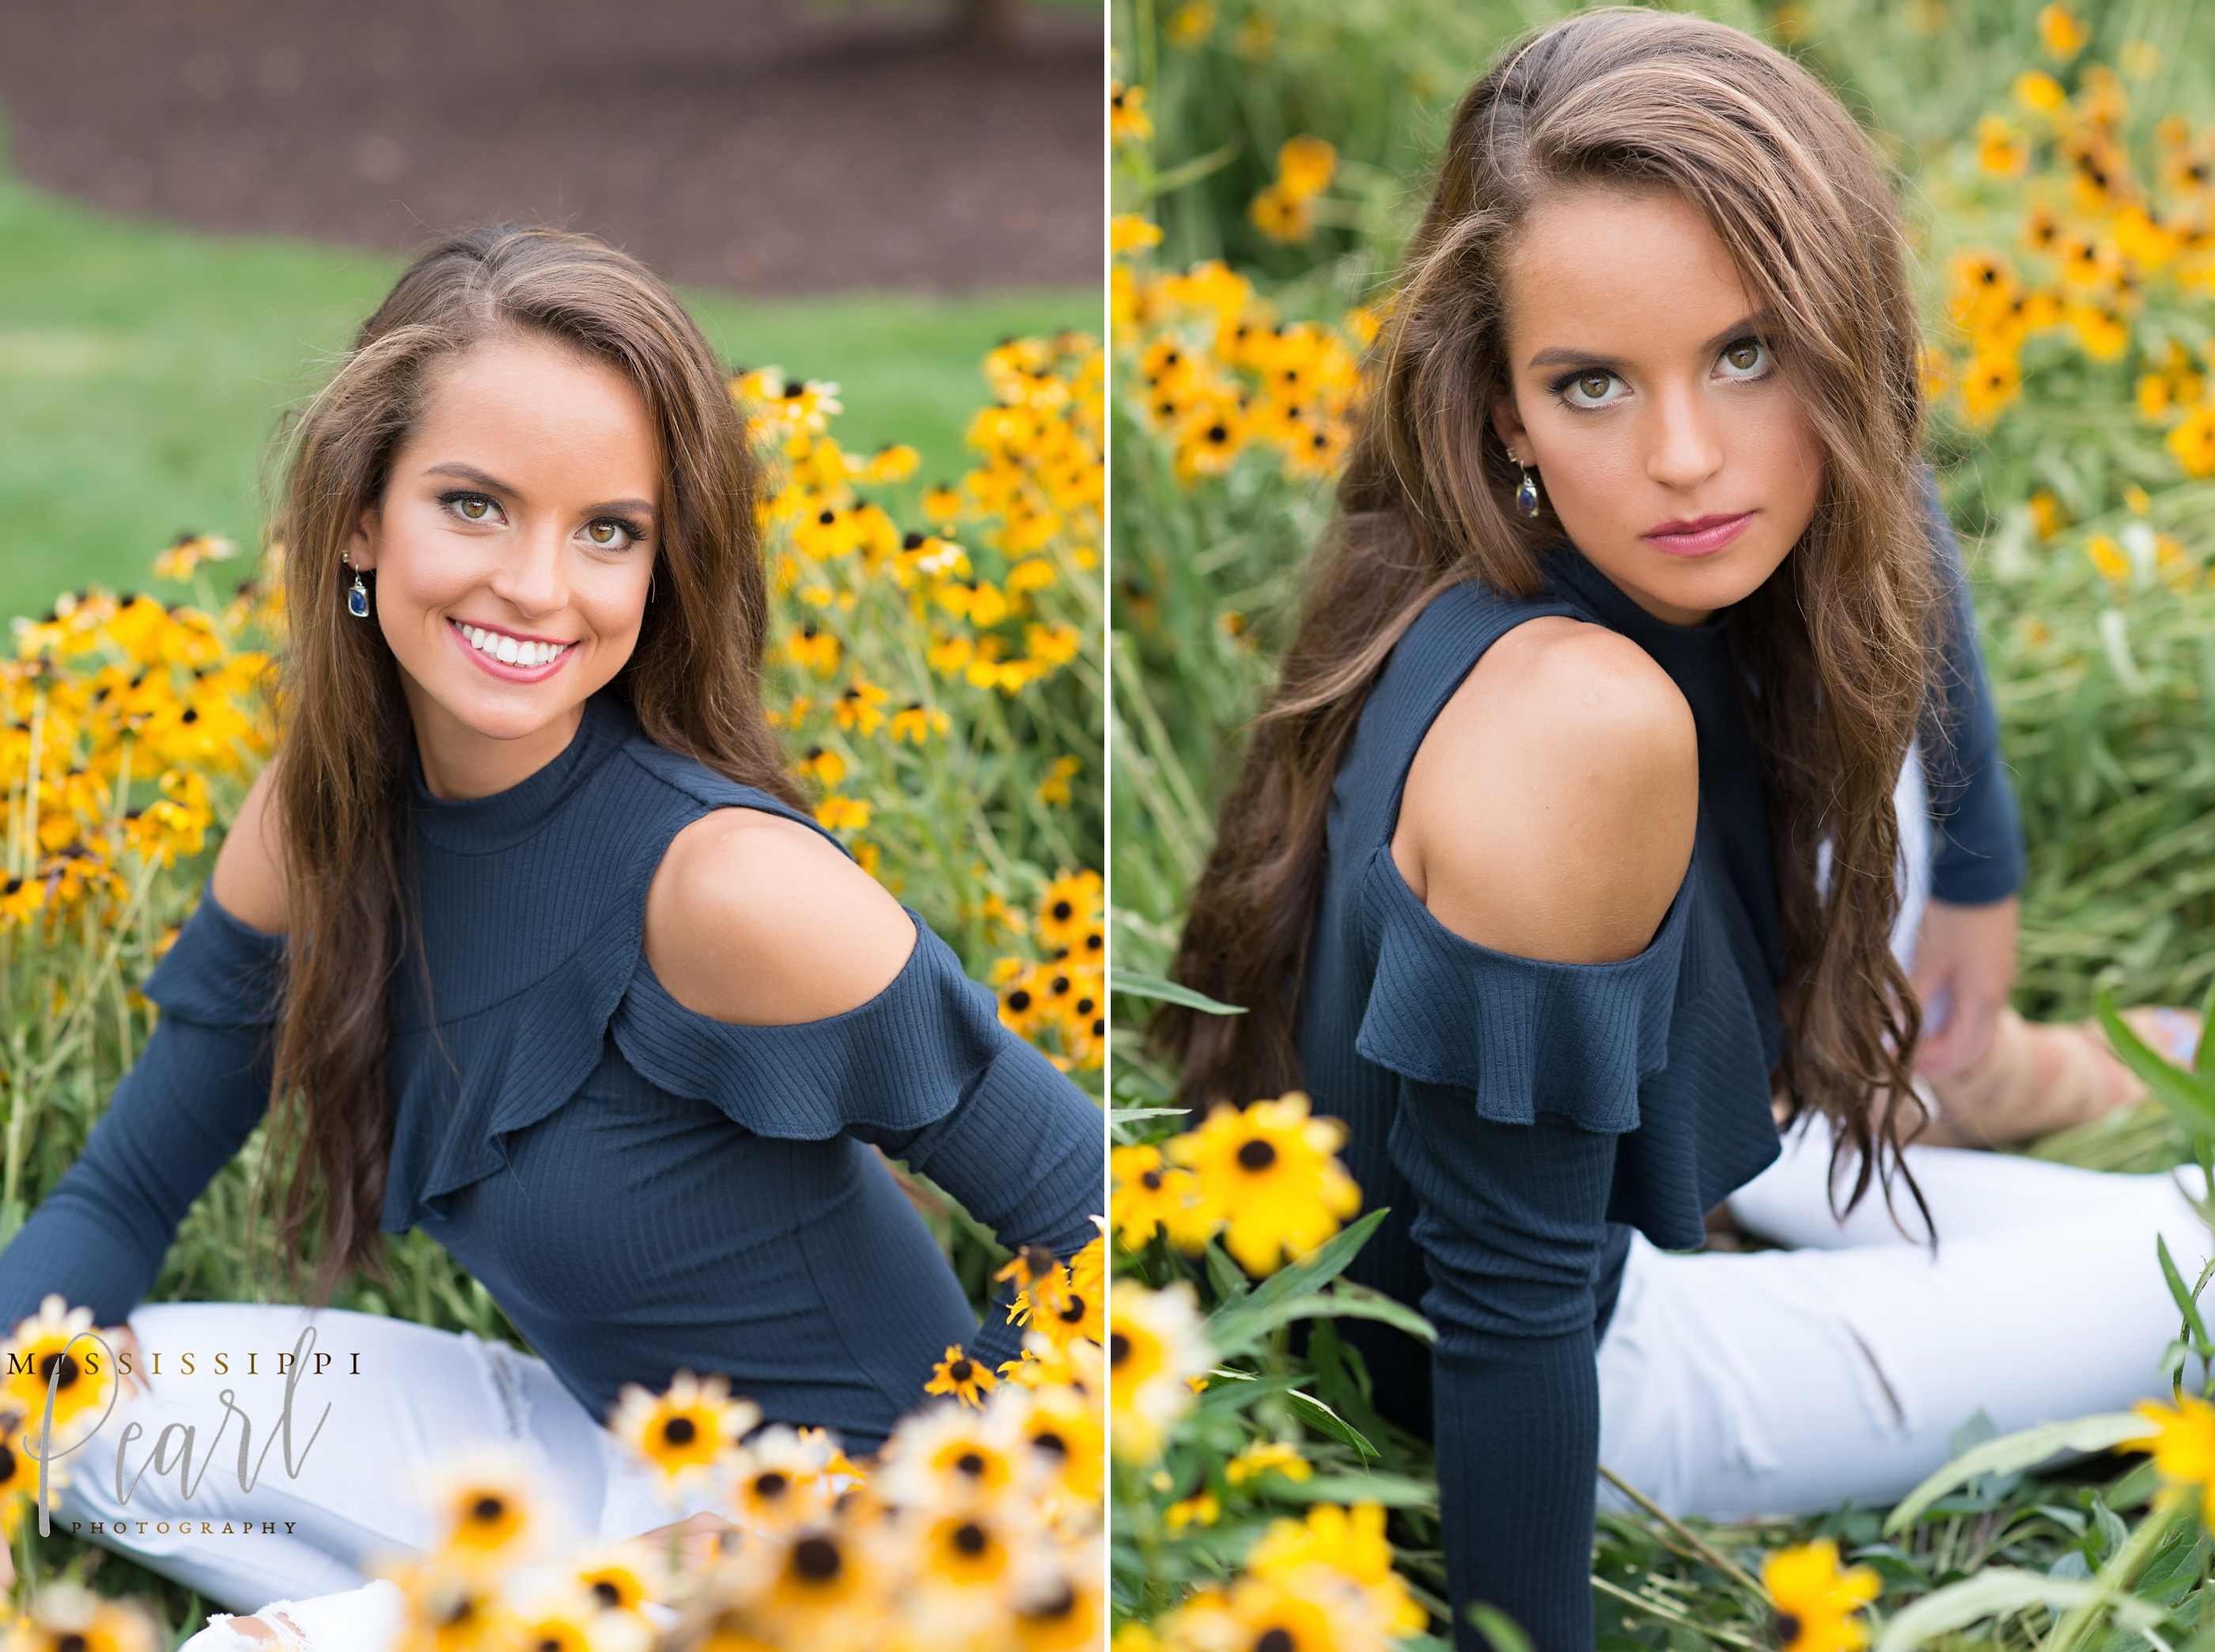 fun fashion senior pictures in downtown Iowa City with Mississippi Pearl Photography, wildflowers, daffodils